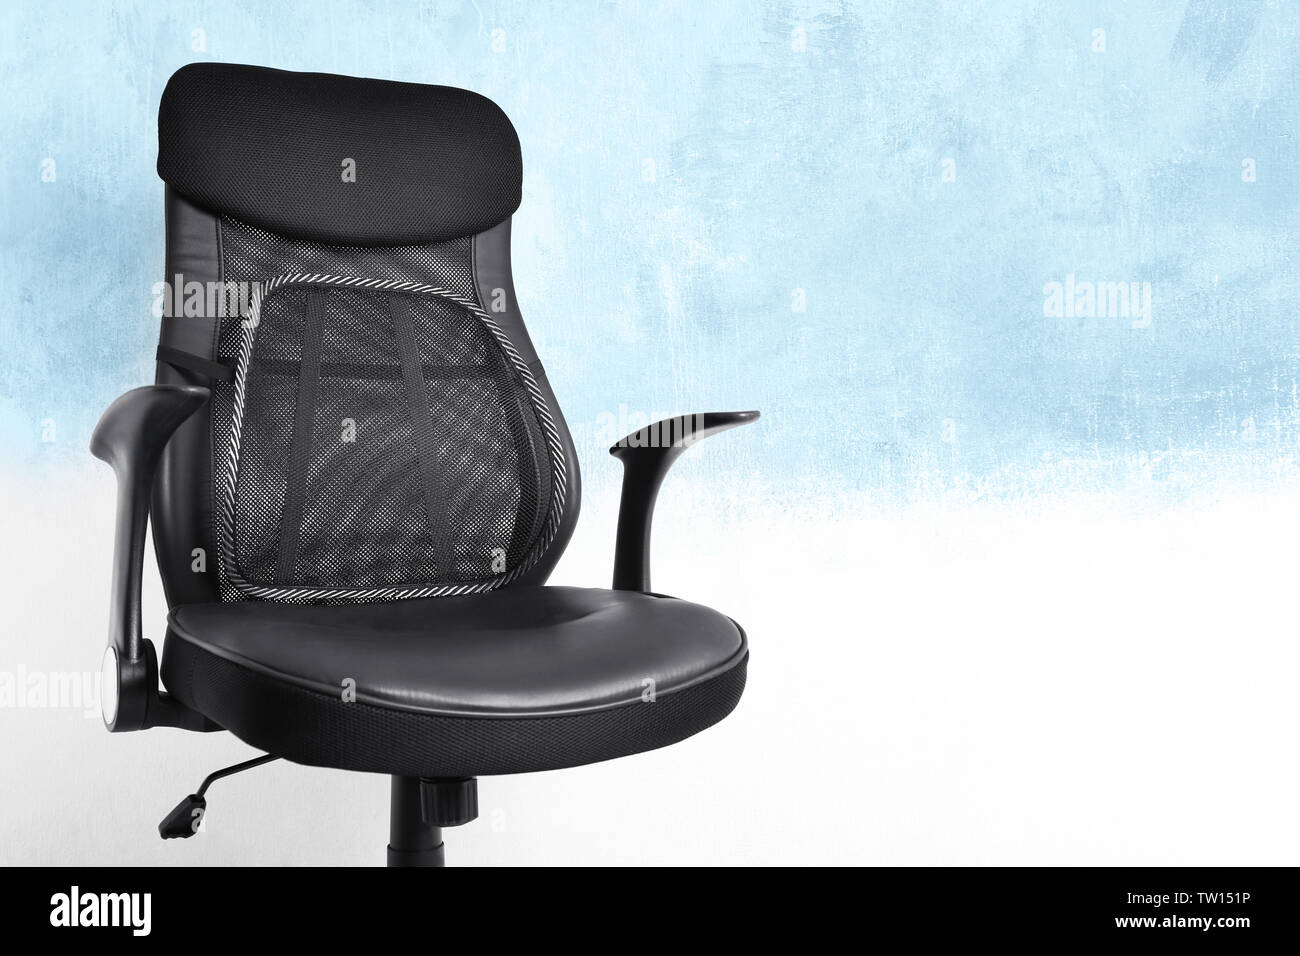 Office Chair With Mesh For Back Support On Light Background